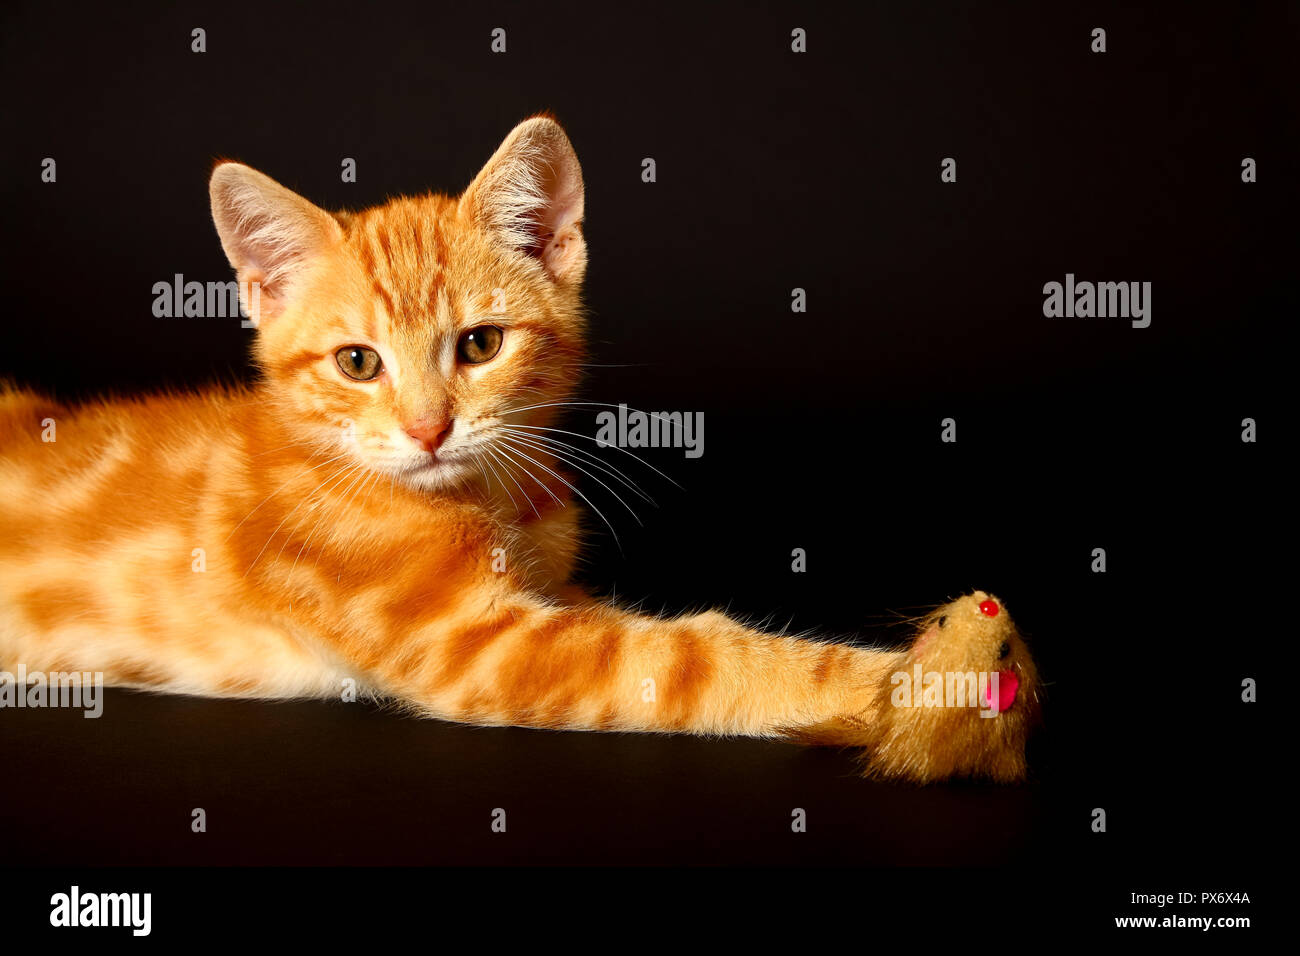 Ginger mackerel tabby12 week old kitten isolated on a black background playing with a toy mouse - Stock Image